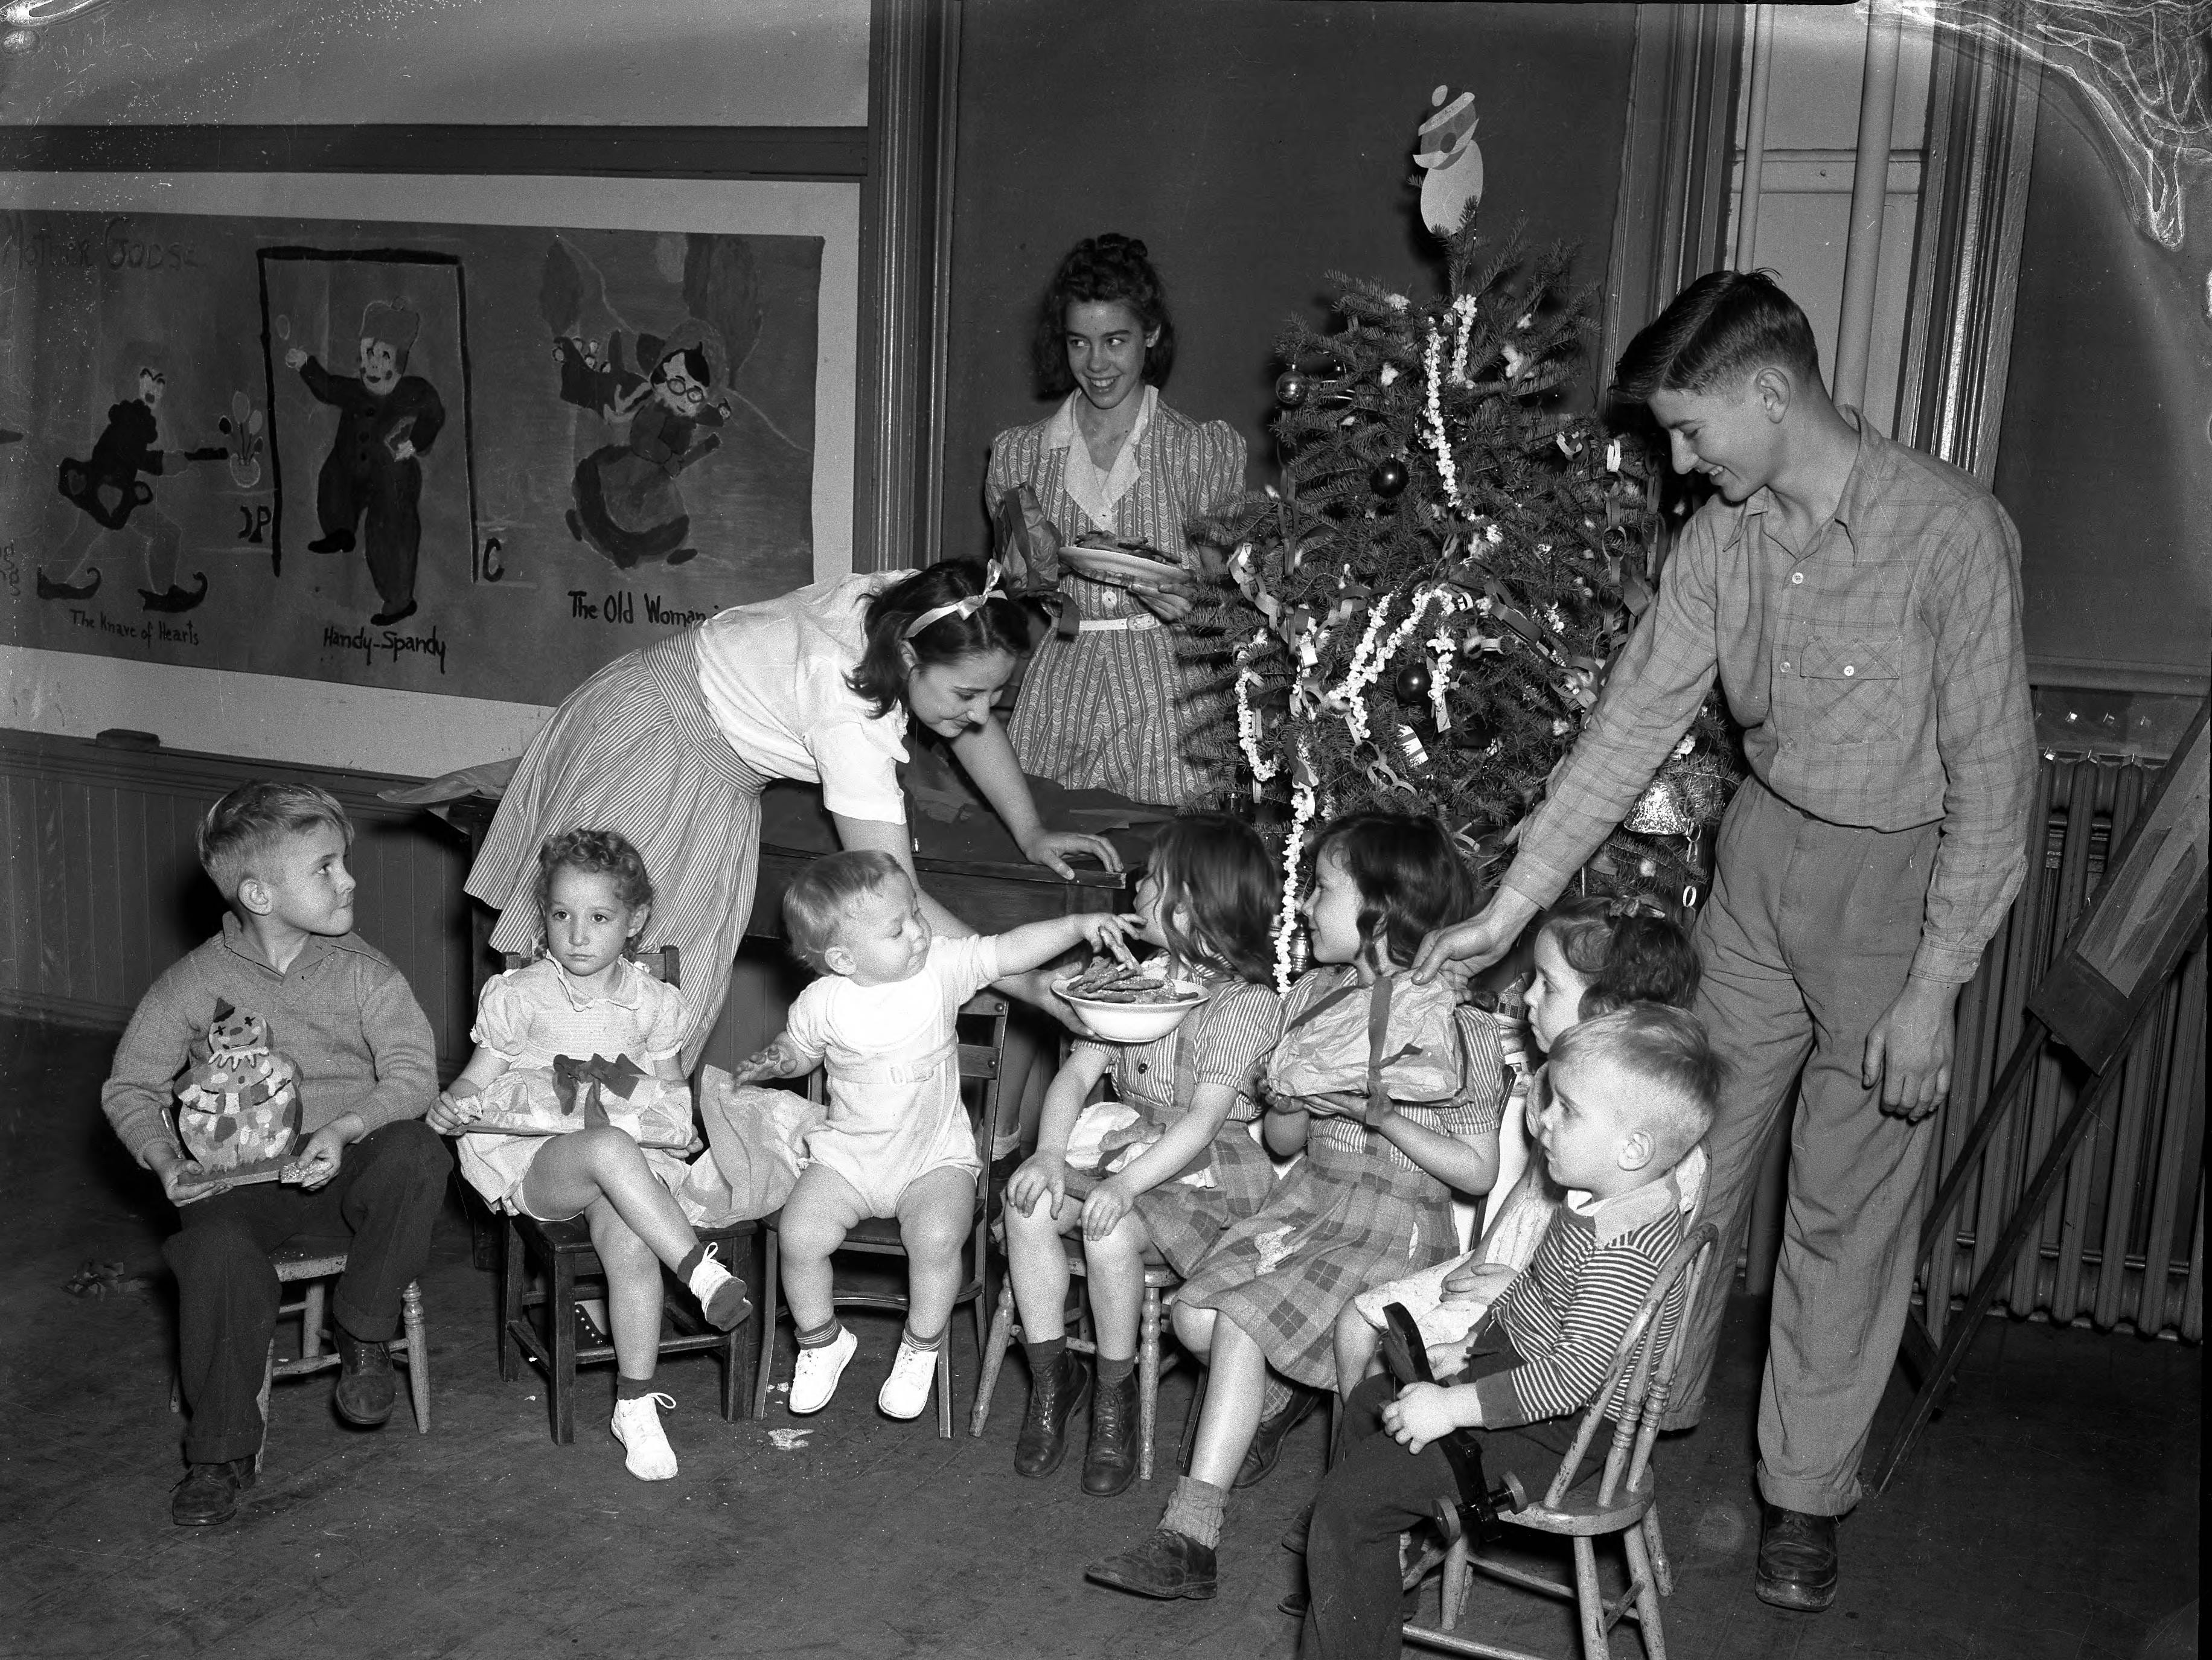 Seven little children sitting in front of a decorated Christmas tree, with older boy handing one a present and older girls holding plate and bowl of cookies.  There are primitive drawings of Mother Goose characters on the wall to the left in 1945.